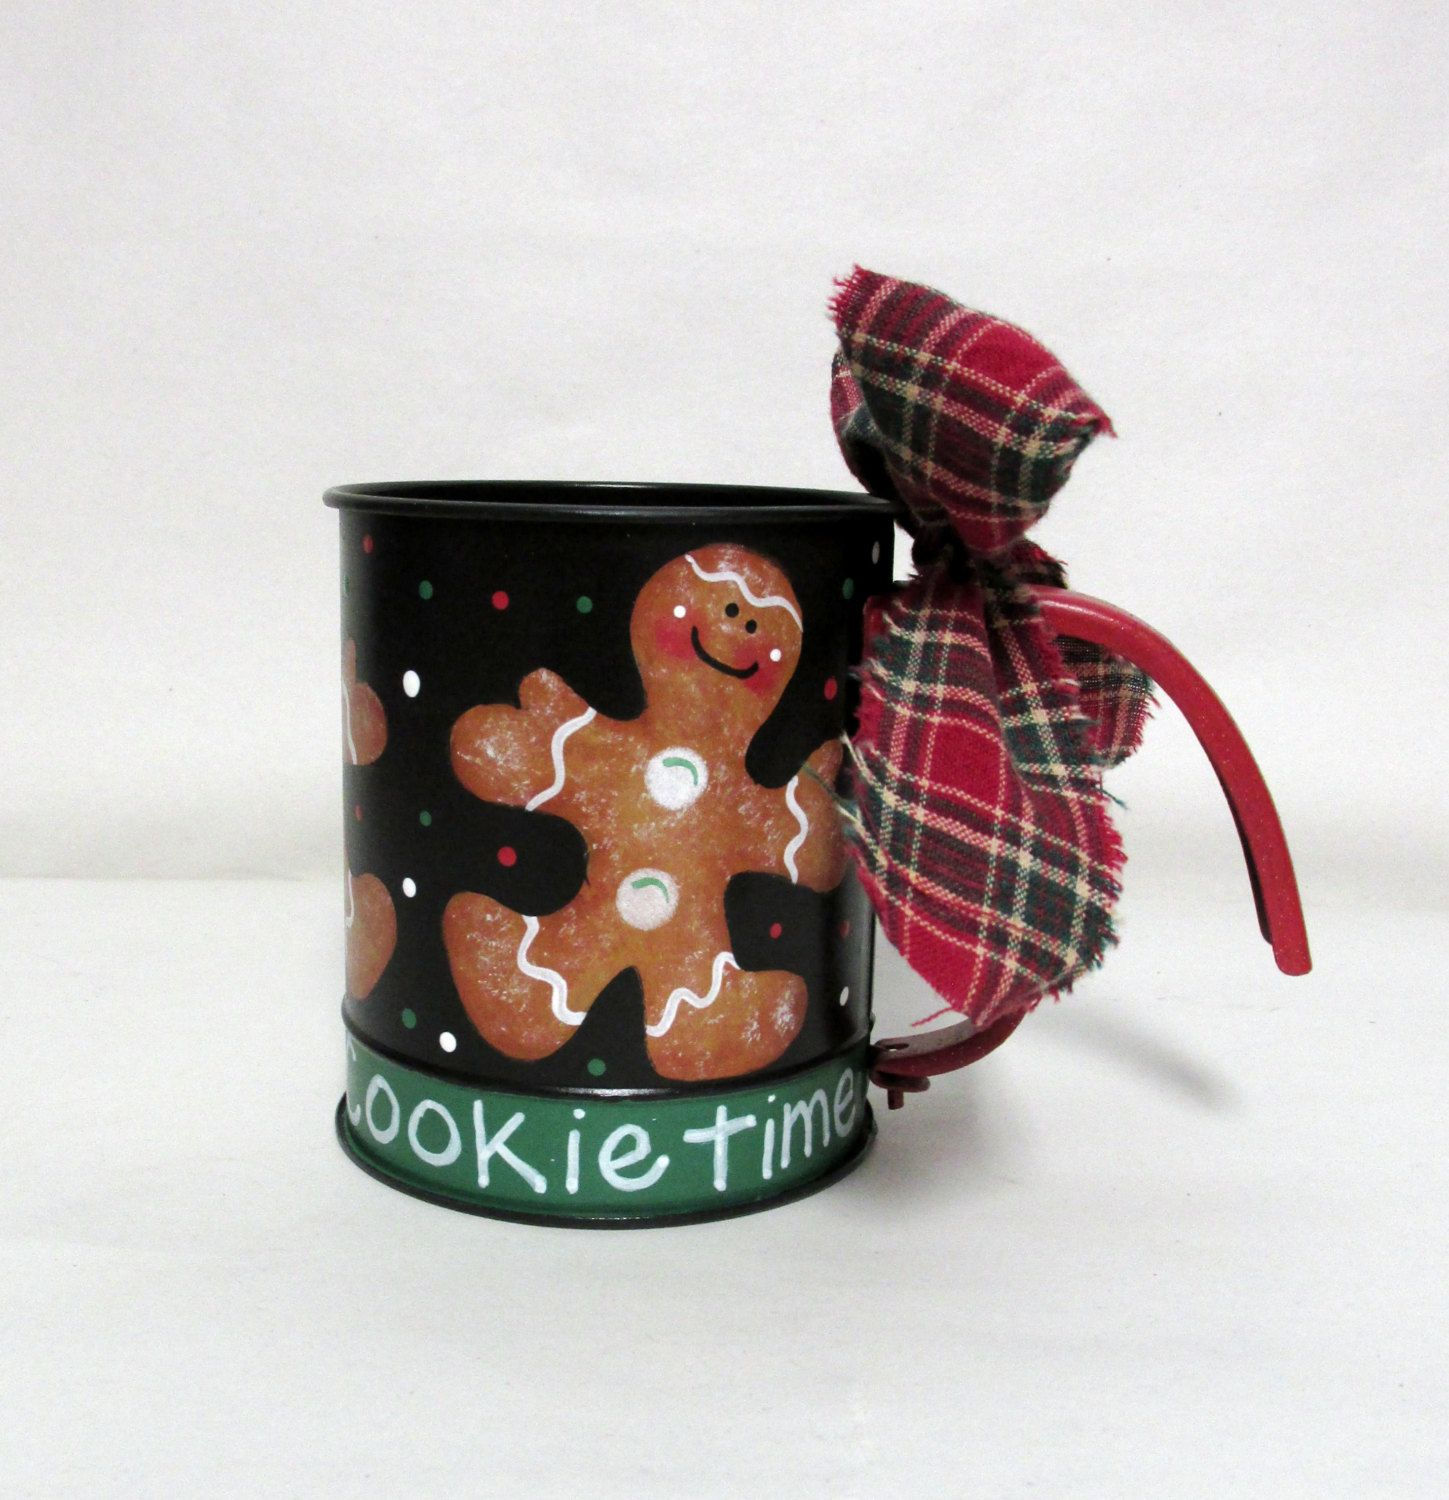 Vintage Hand Sifter with Ginger Bread Cookies, Cookie Time